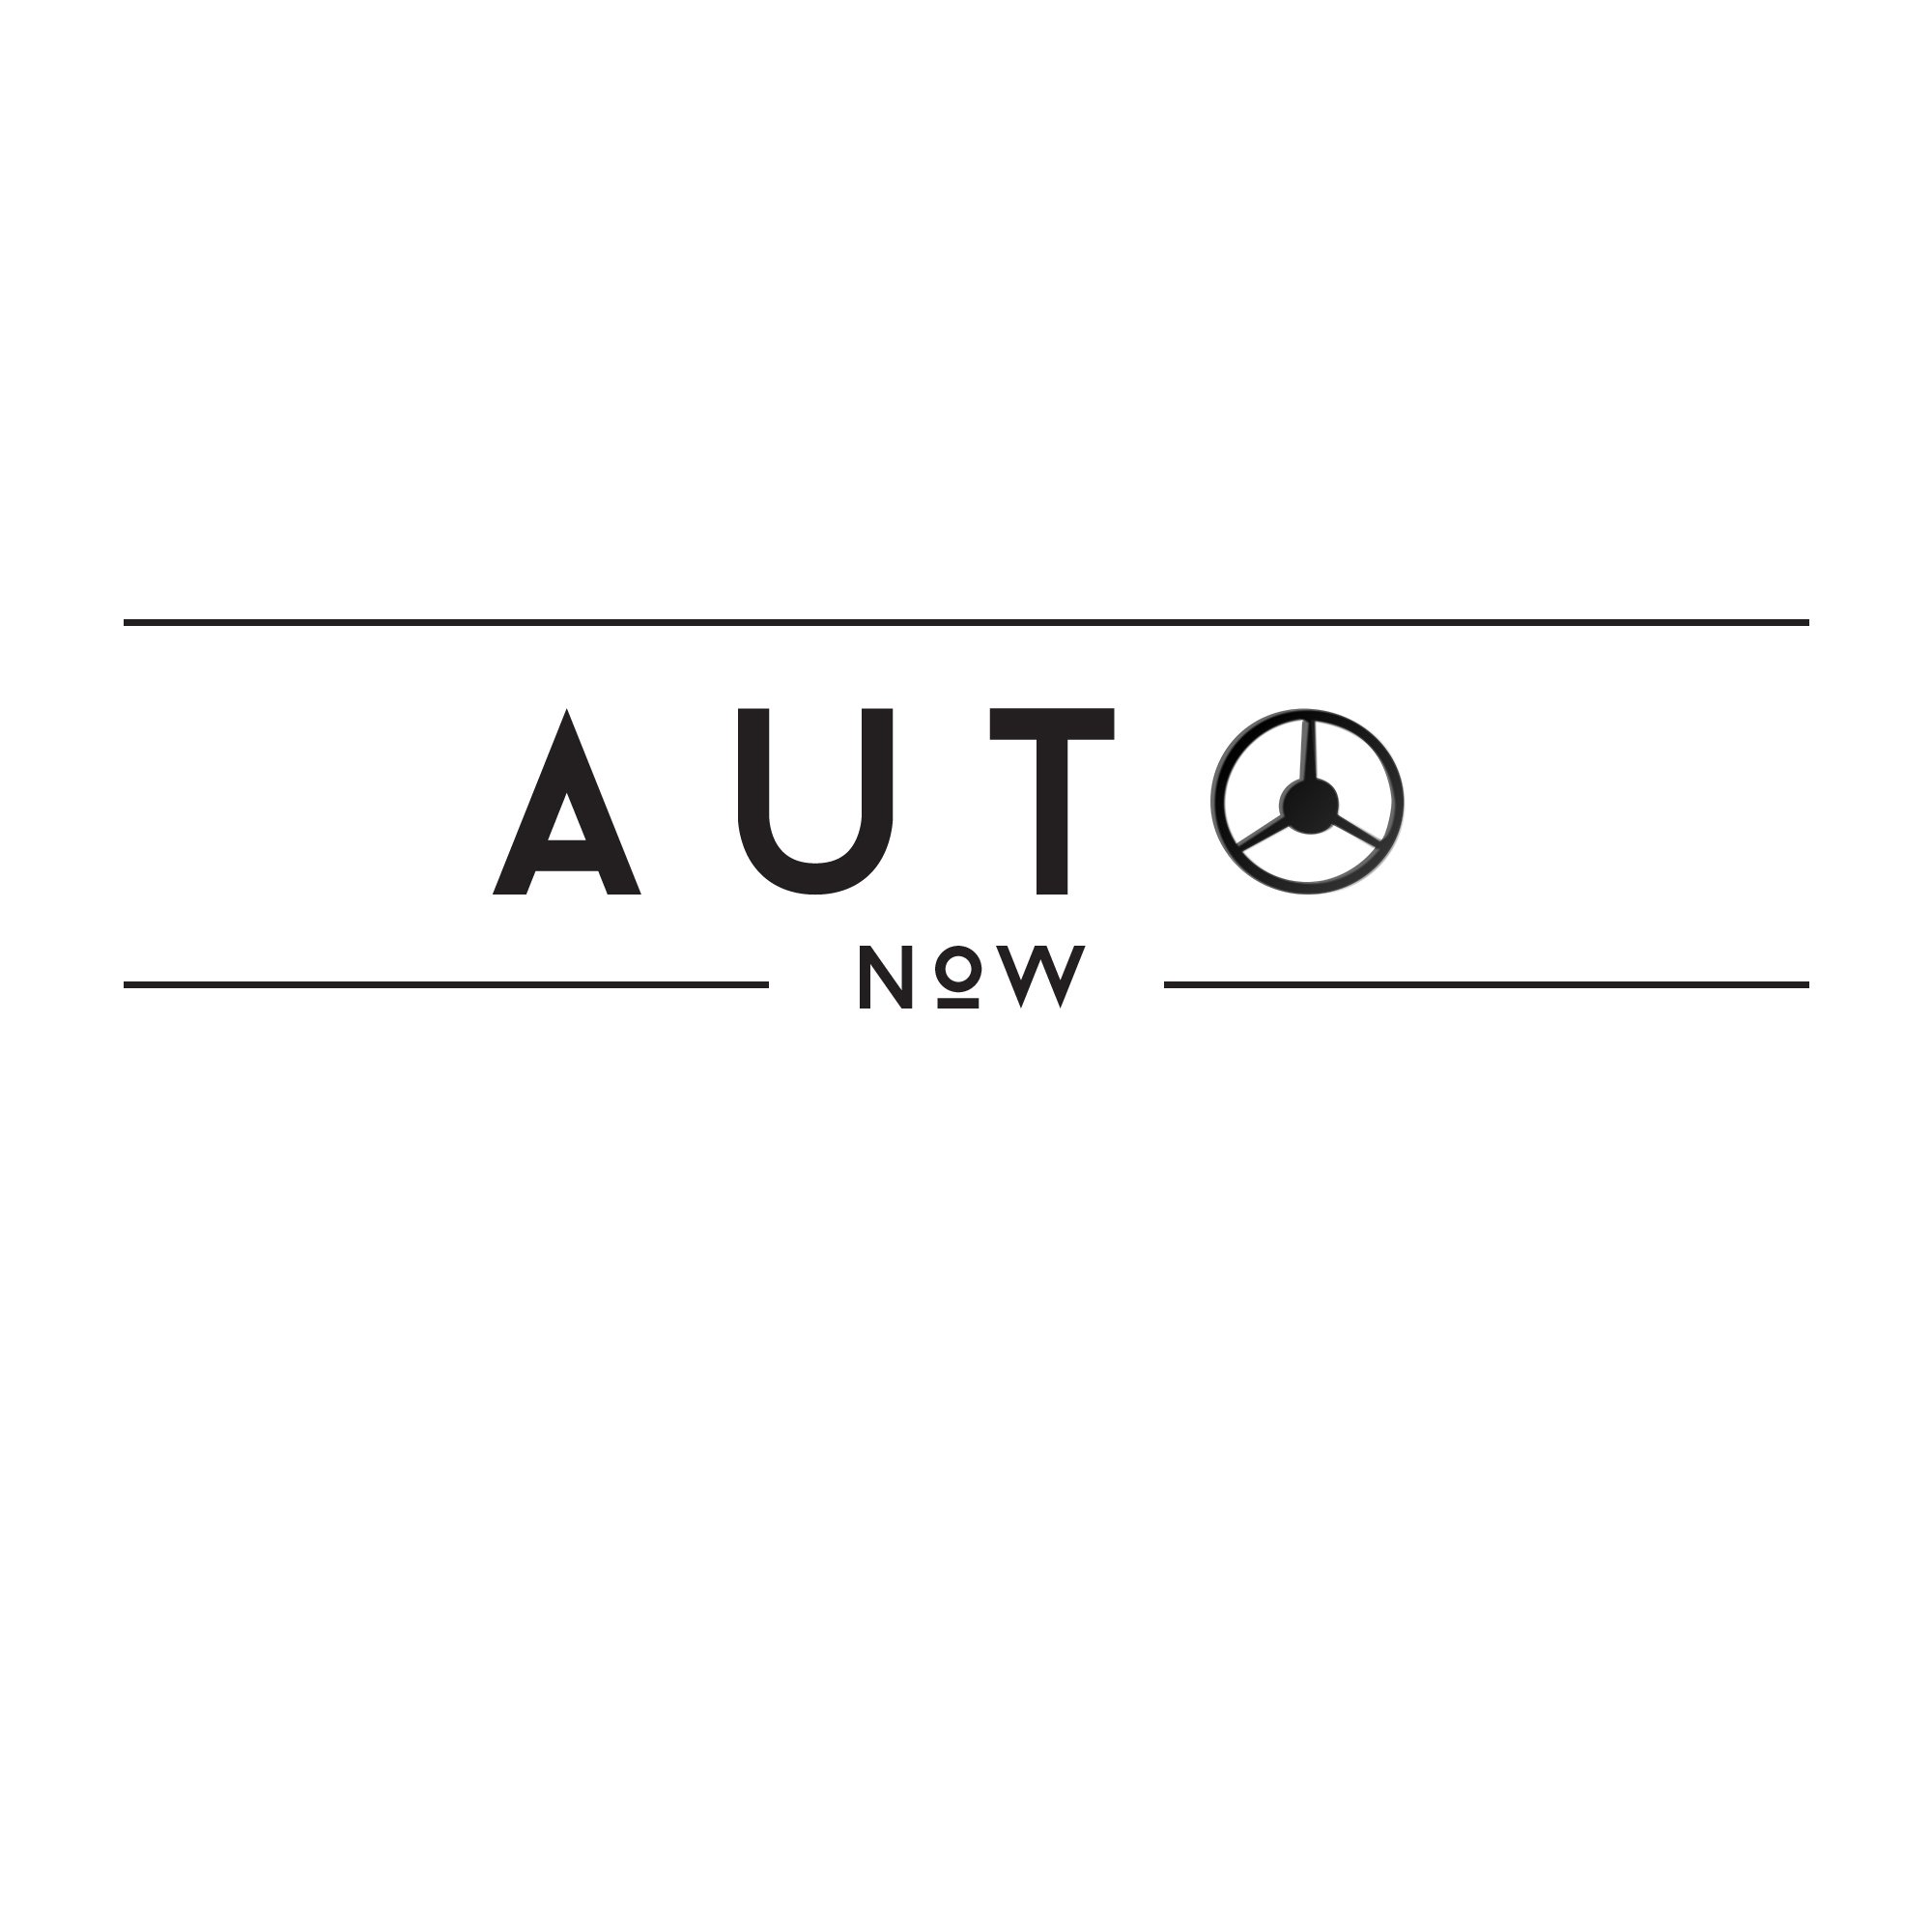 Used Cars In Bury St Edmunds - Auto now